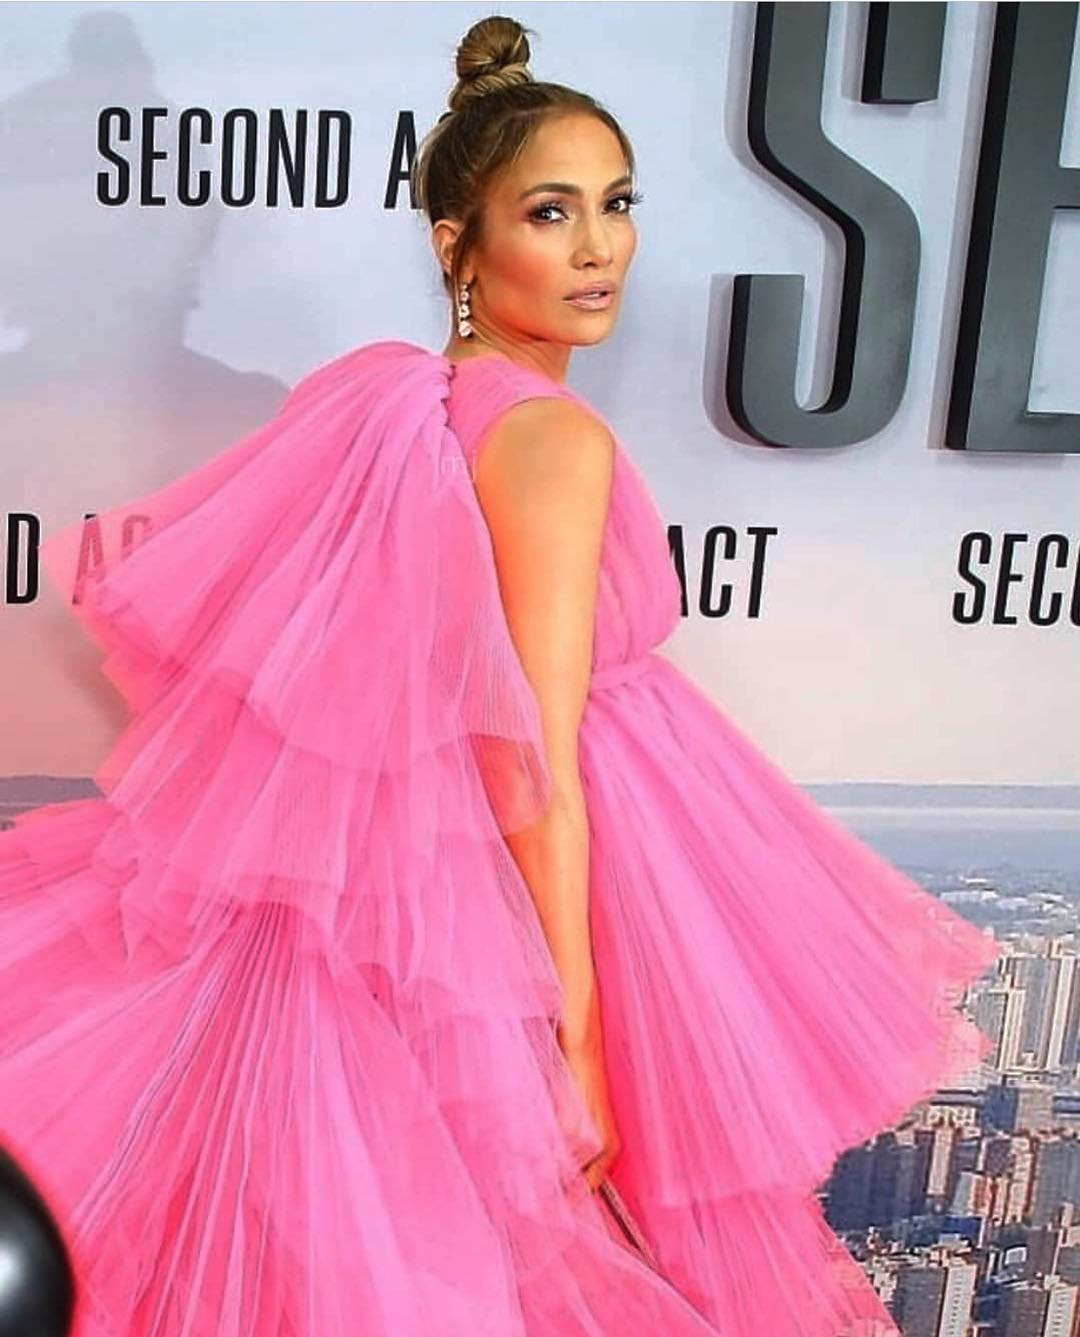 jlo - Why bad boys are no good! Here are celebrities who got burnt